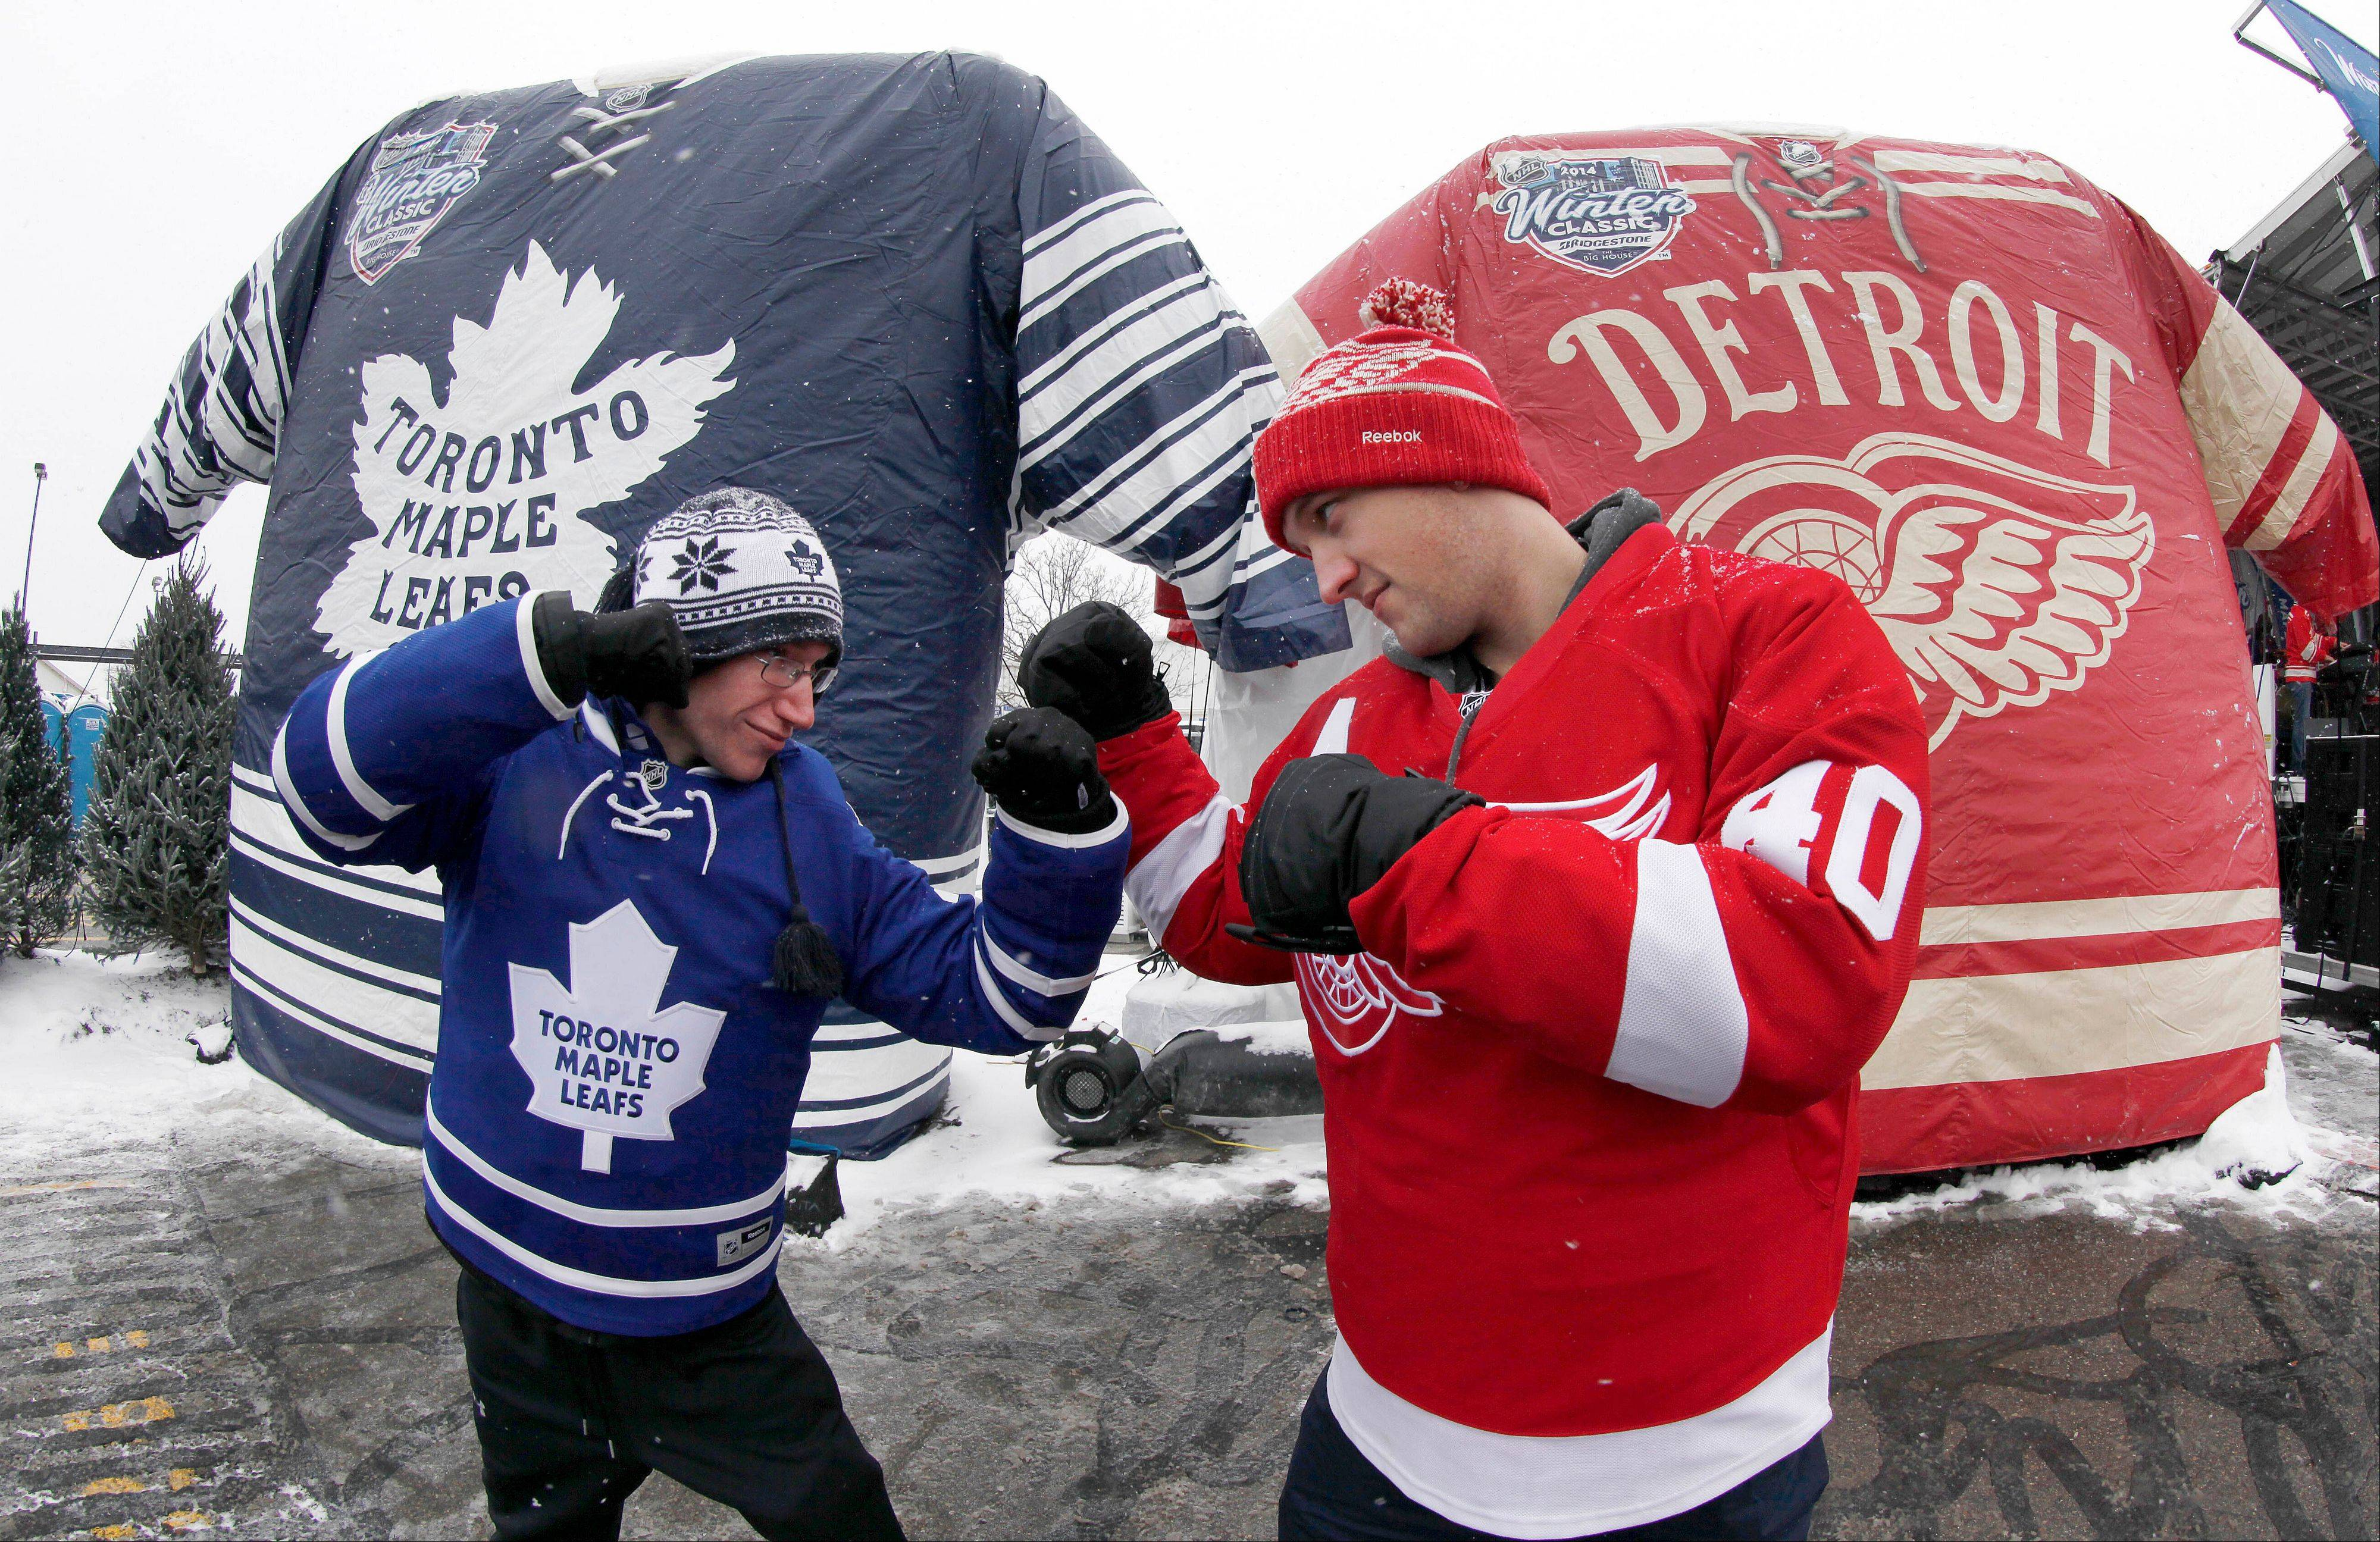 Nathan Dunville, of Halifax, Nova Scotia, left, and Adam Boutilier, of Cole Harbour, Nova Scotia, pose for family photographs at the NHL Winter Classic hockey game at Michigan Stadium in Ann Arbor, Mich., Wednesday, Jan, 1. 2014, where the Detroit Red Wings play the Toronto Maple Leafs.